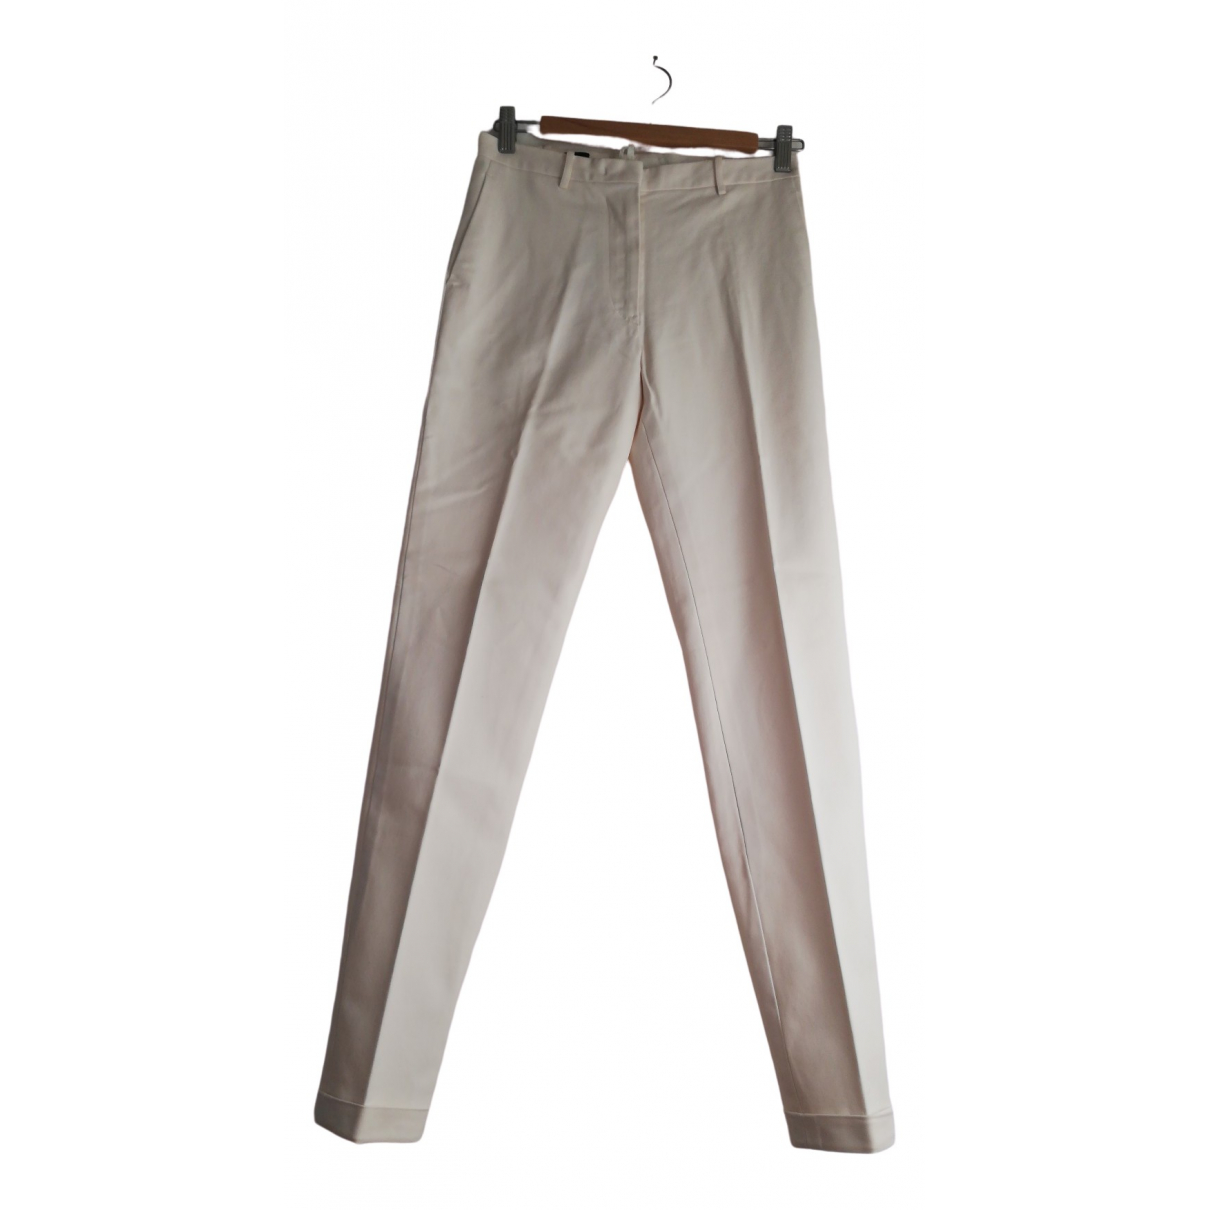 Jil Sander \N Ecru Cotton Trousers for Women 34 FR